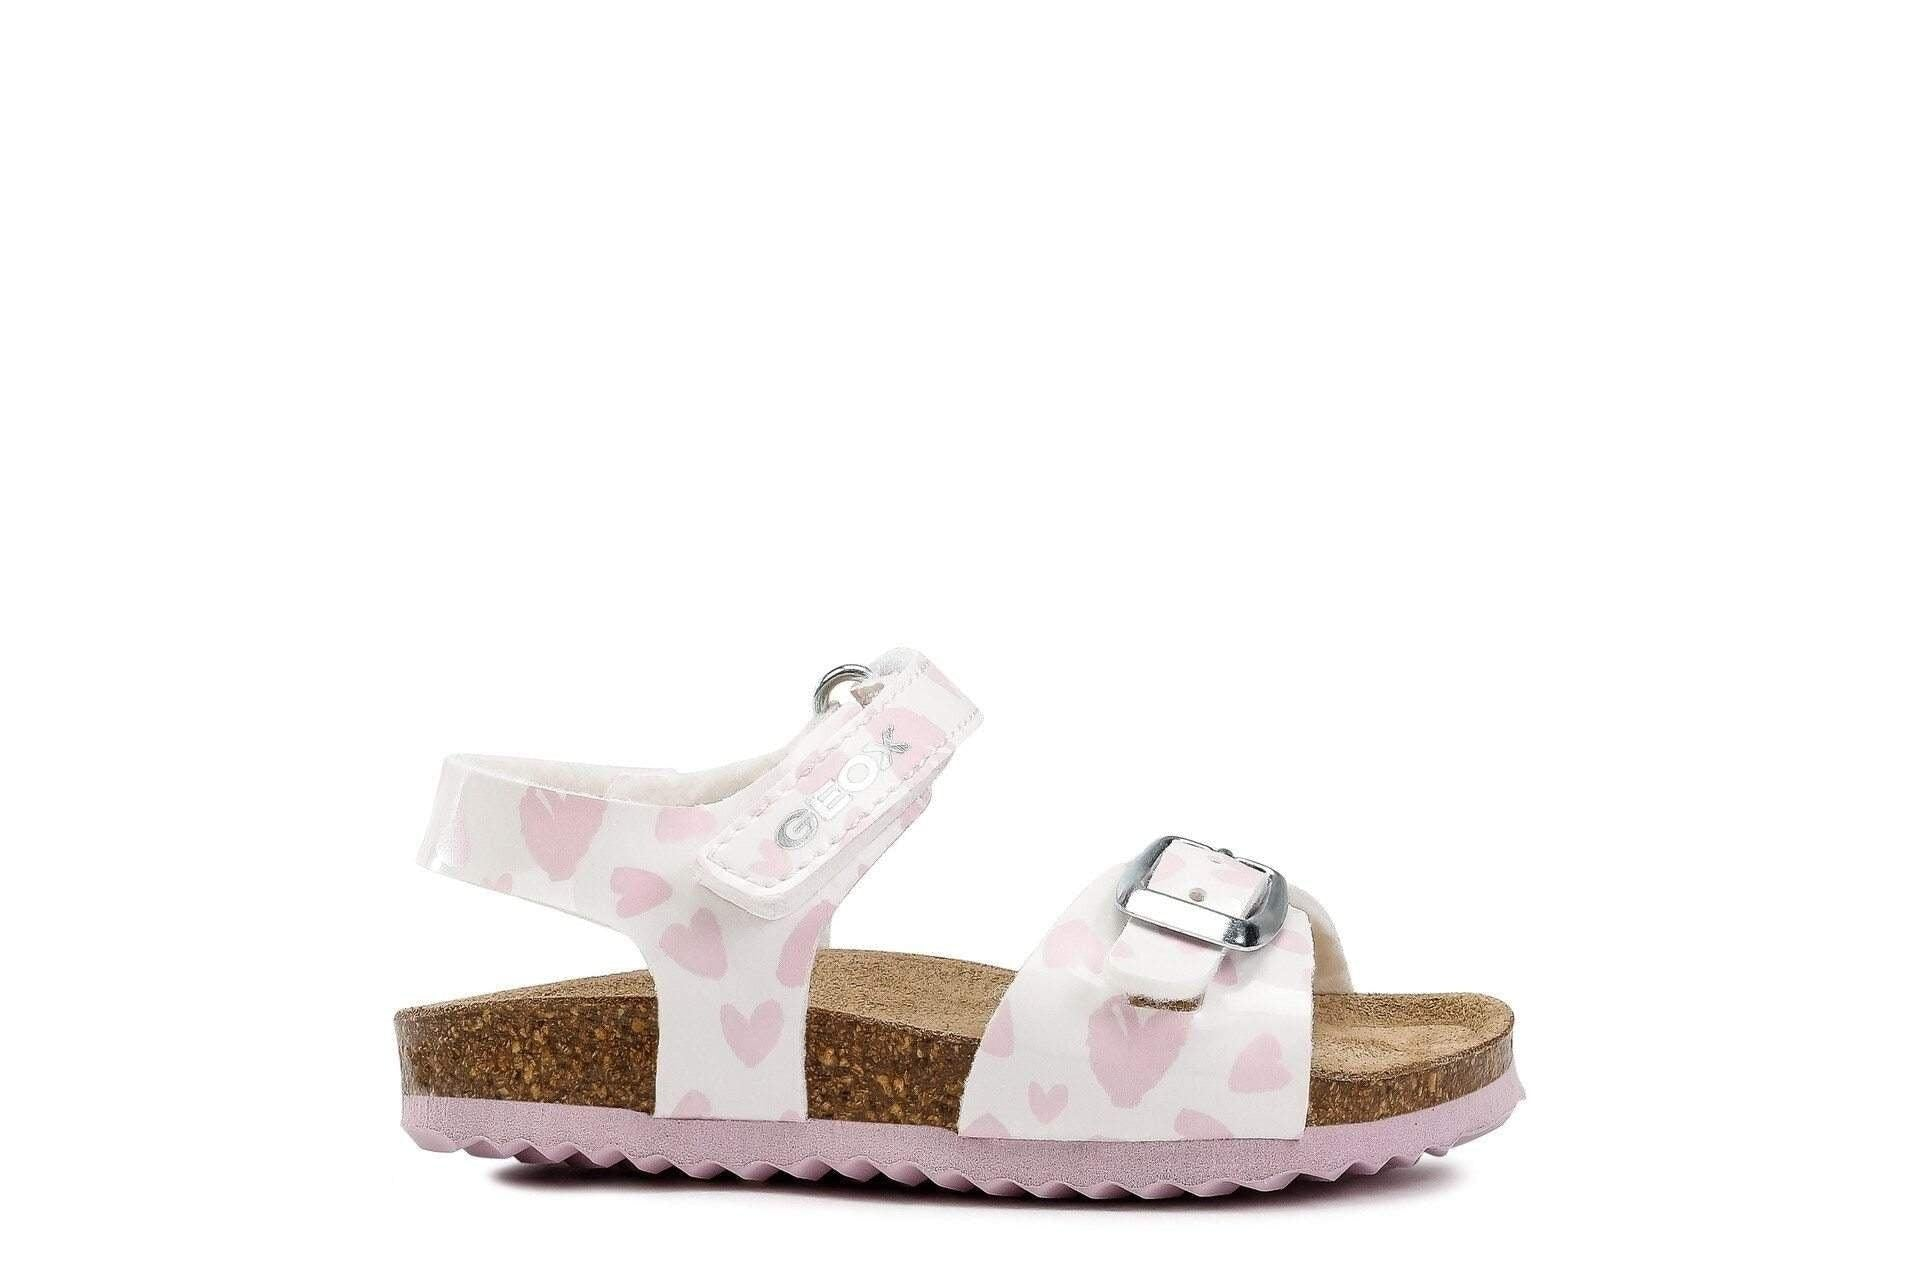 Girls Sandals - Geox Baby CHALKI Girls Sandals / Infant / Toddler